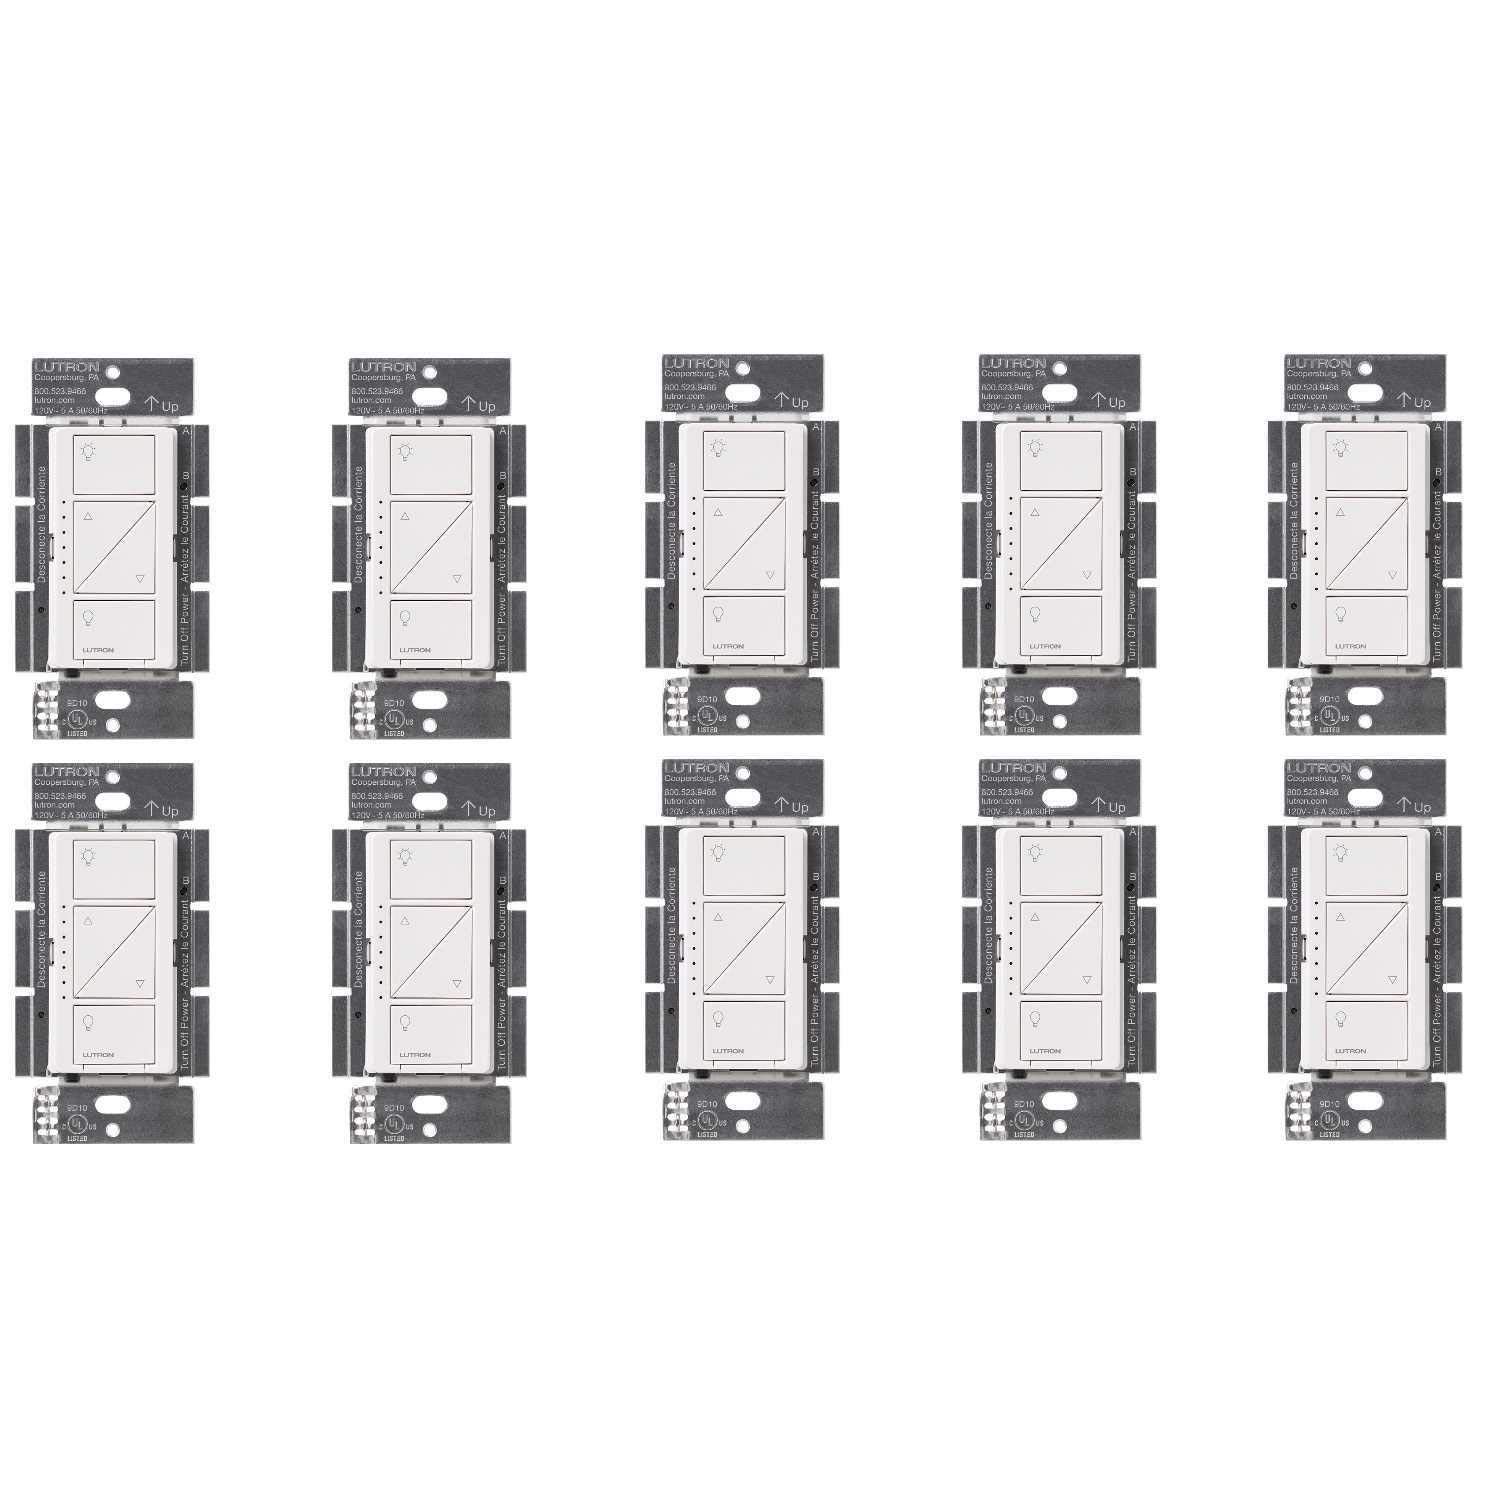 Amazon.com: Lutron PD-6WCL-WH Caseta Wireless Smart Lighting Dimmer Switch, White (10 Pack): Home Improvement